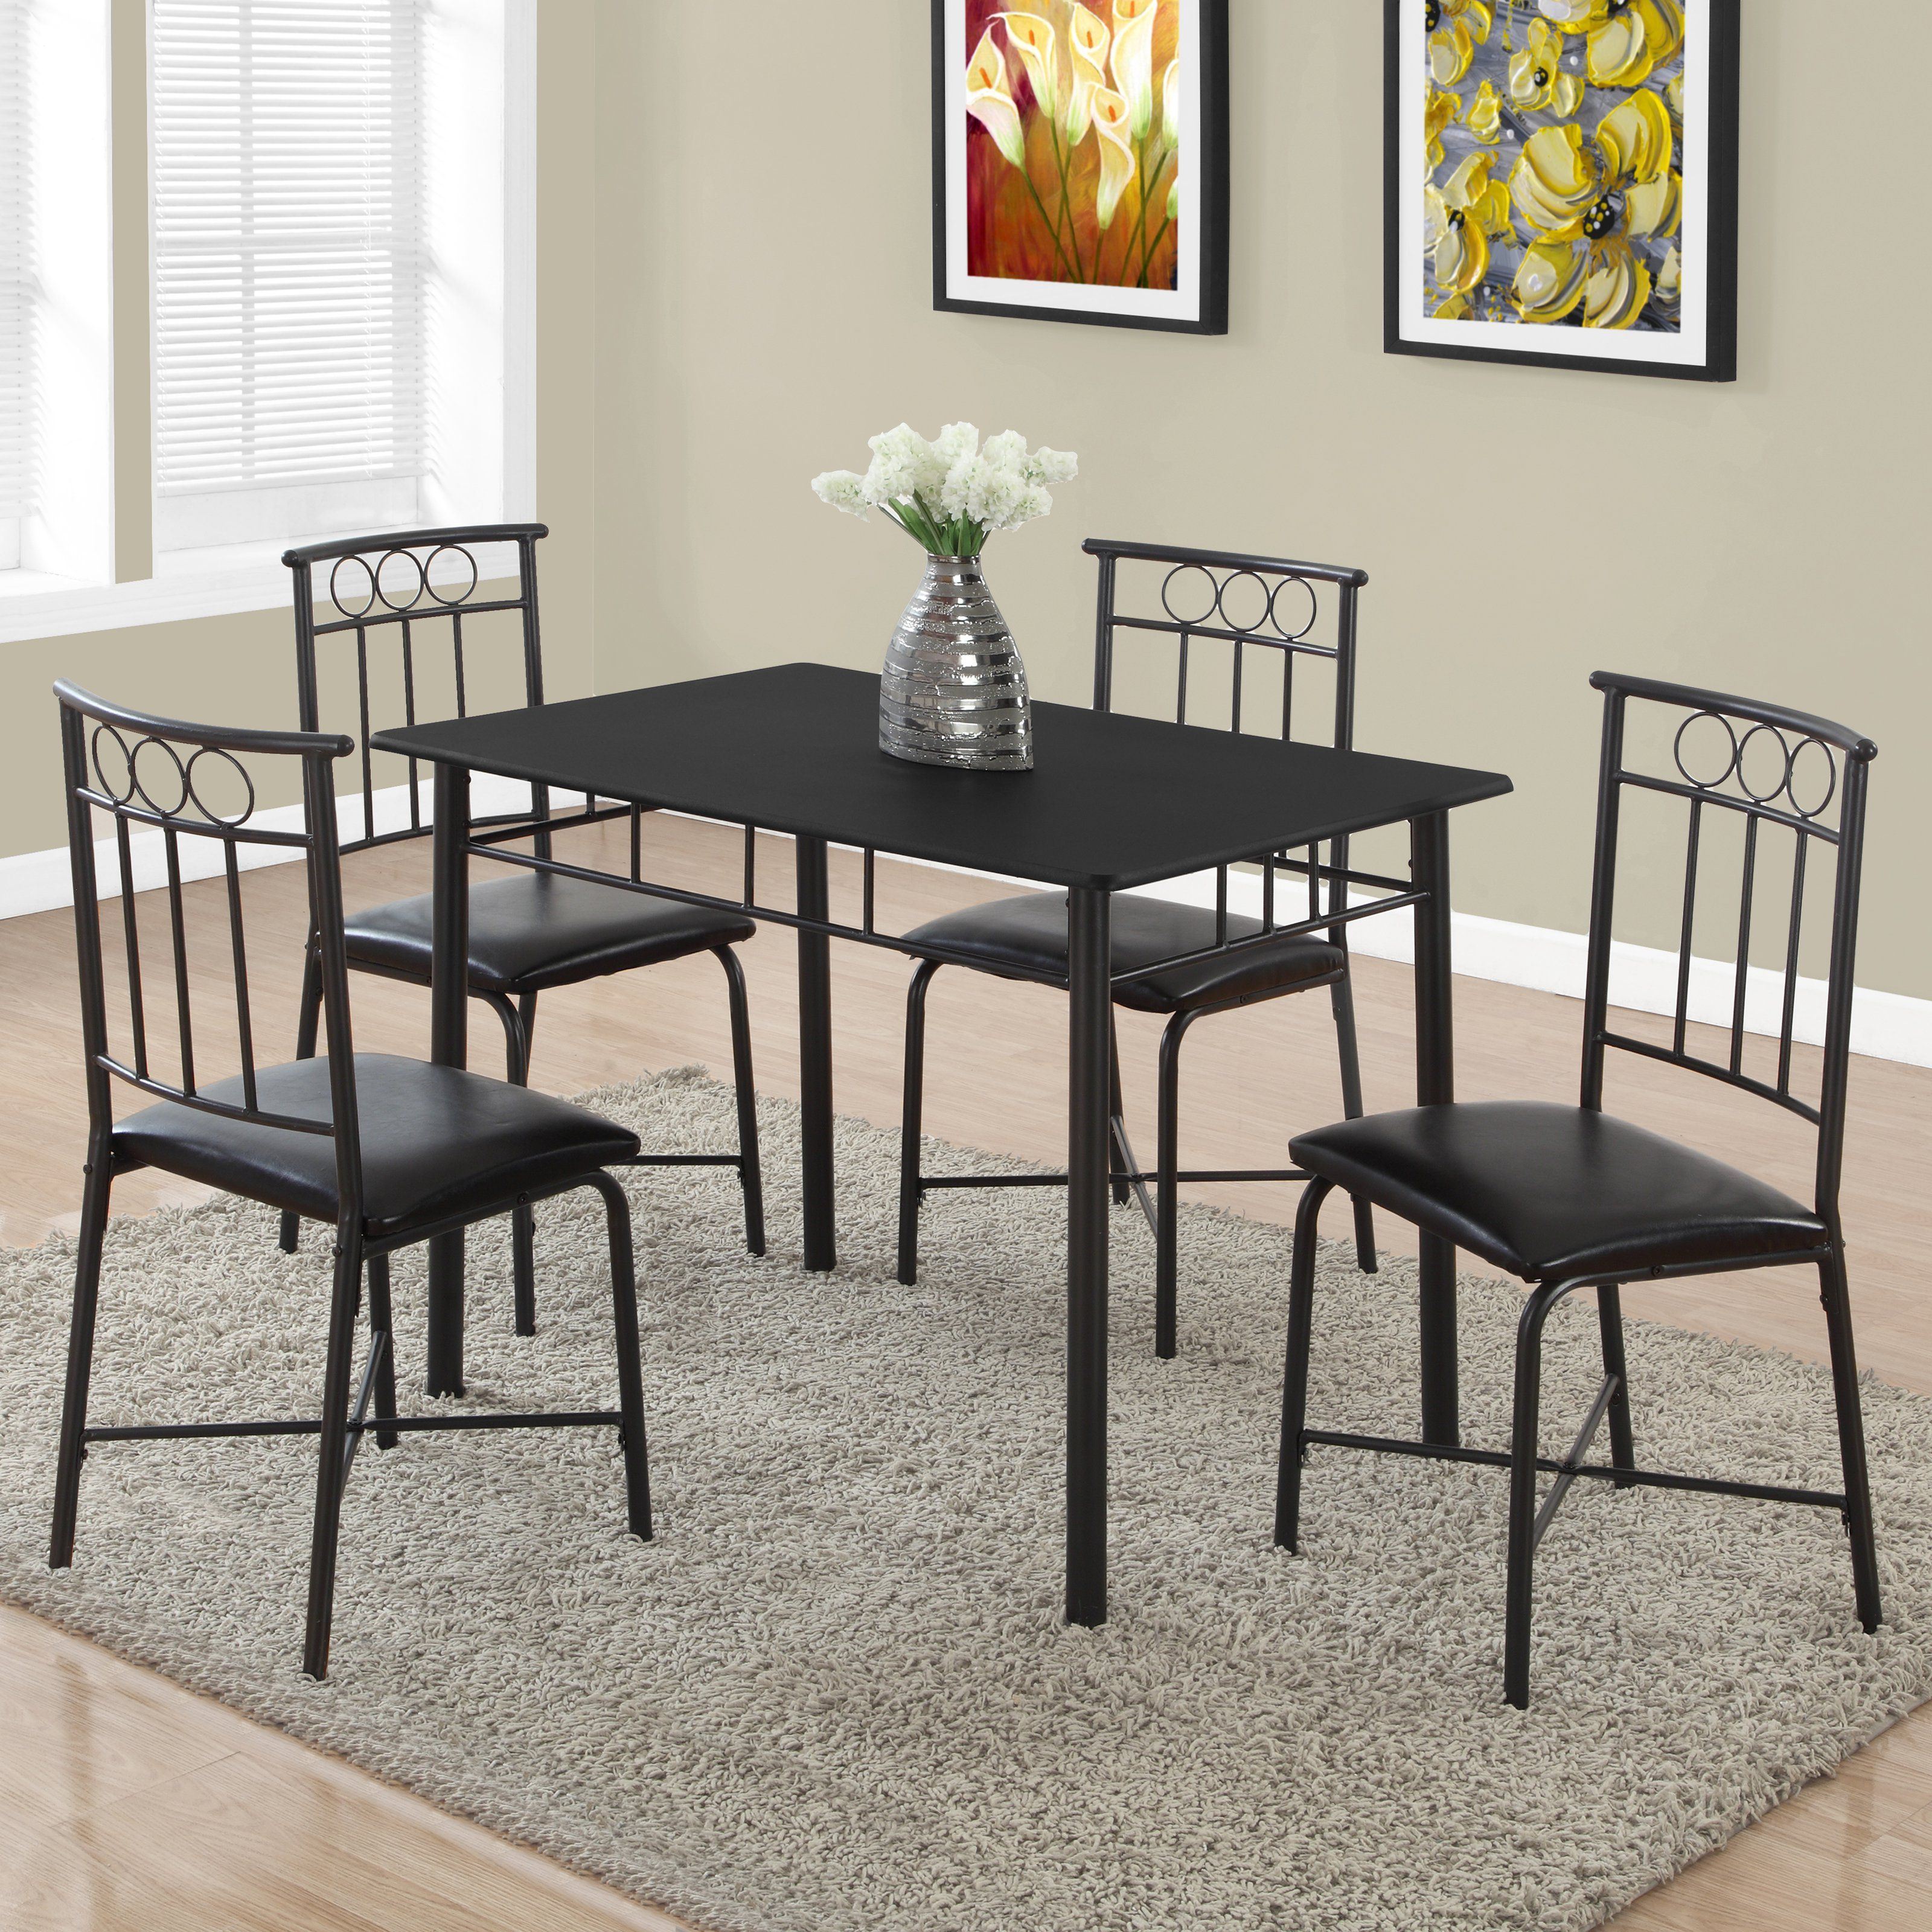 Monarch Specialties Veronica 5 Piece Dining Table Set – I 1018 Throughout Best And Newest Baillie 3 Piece Dining Sets (View 14 of 20)